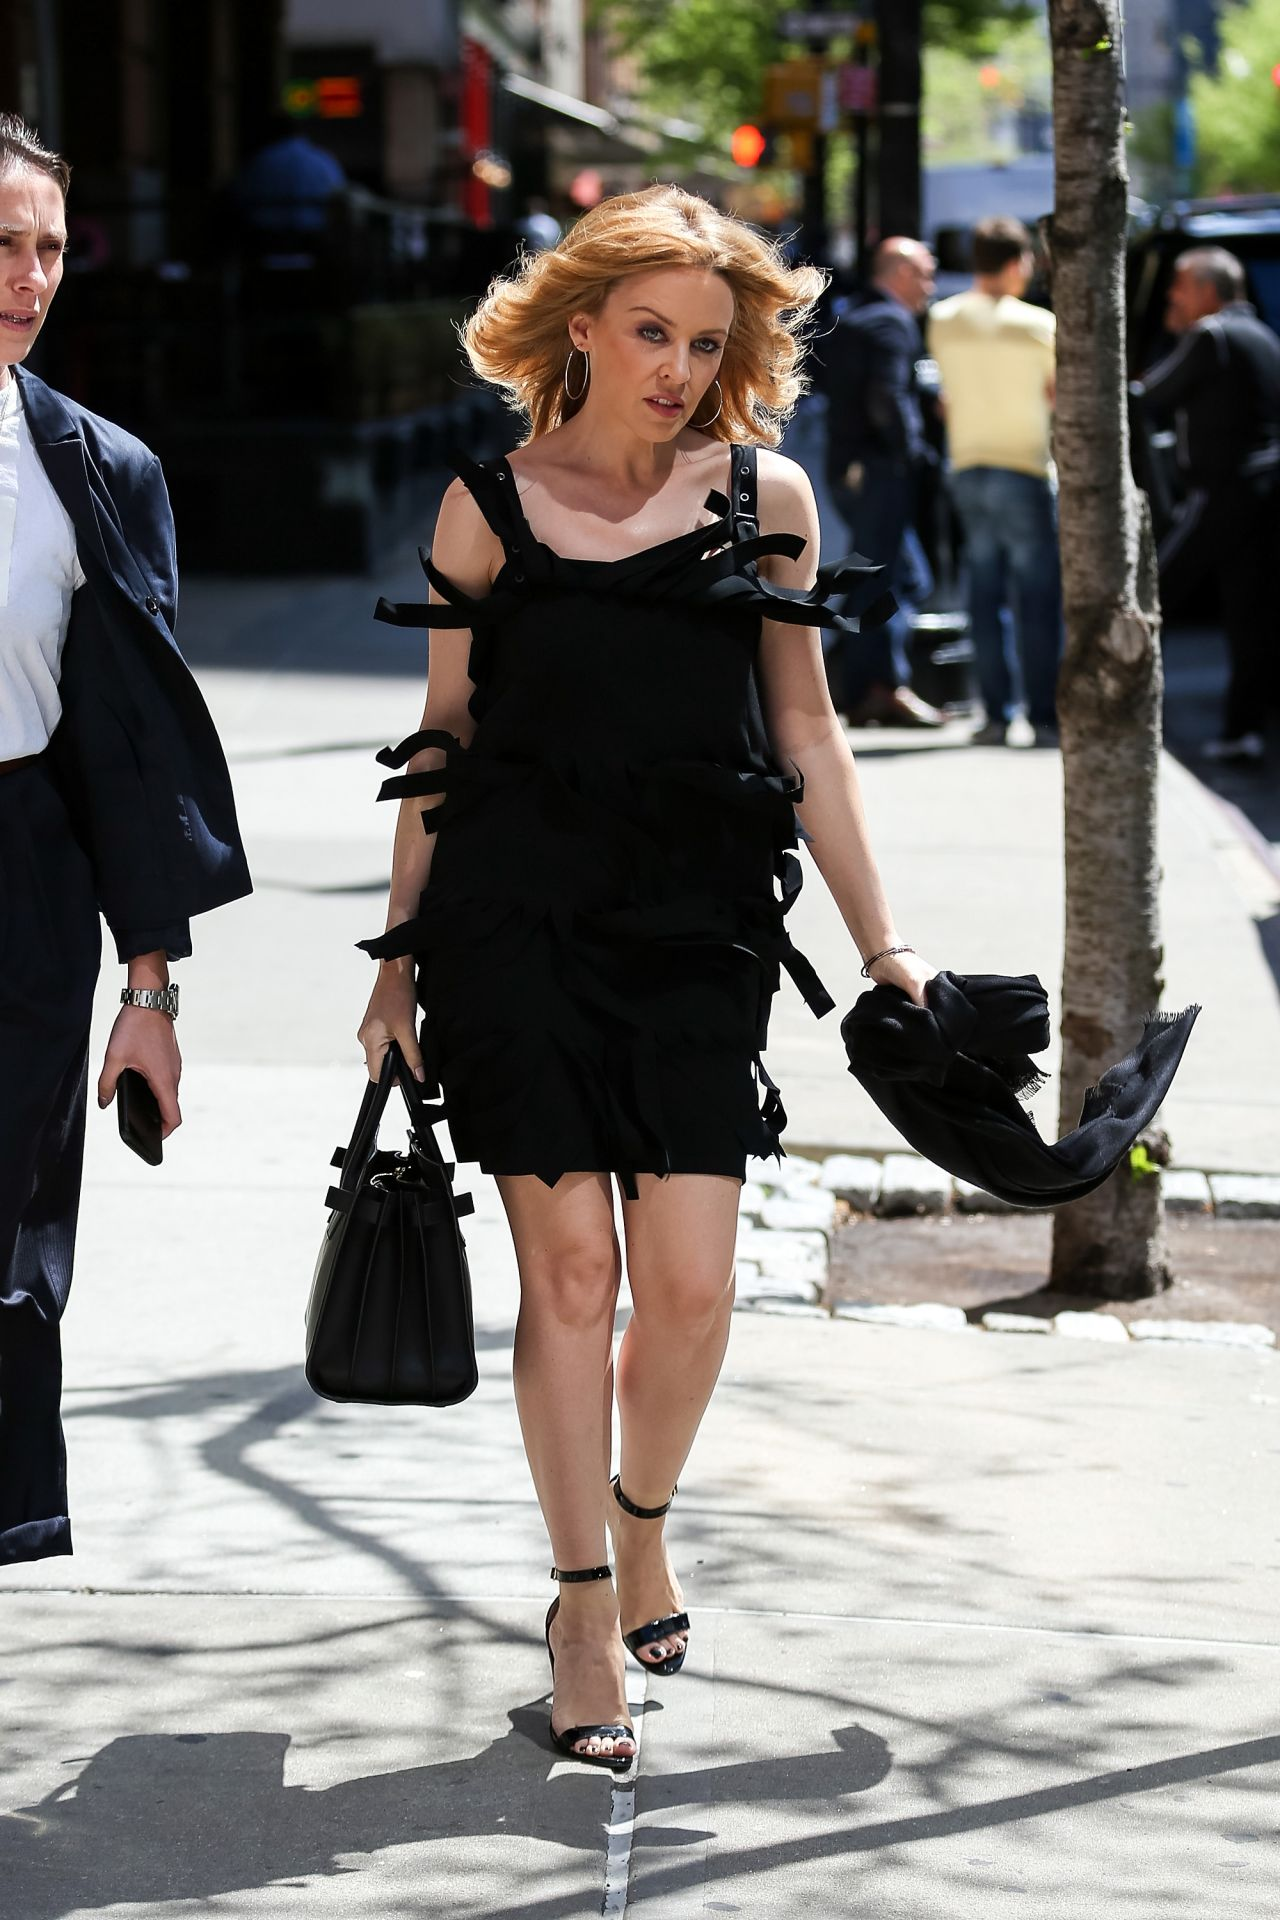 Kylie Minogue Flashes Her Legs In Mini Dress Out In Nyc